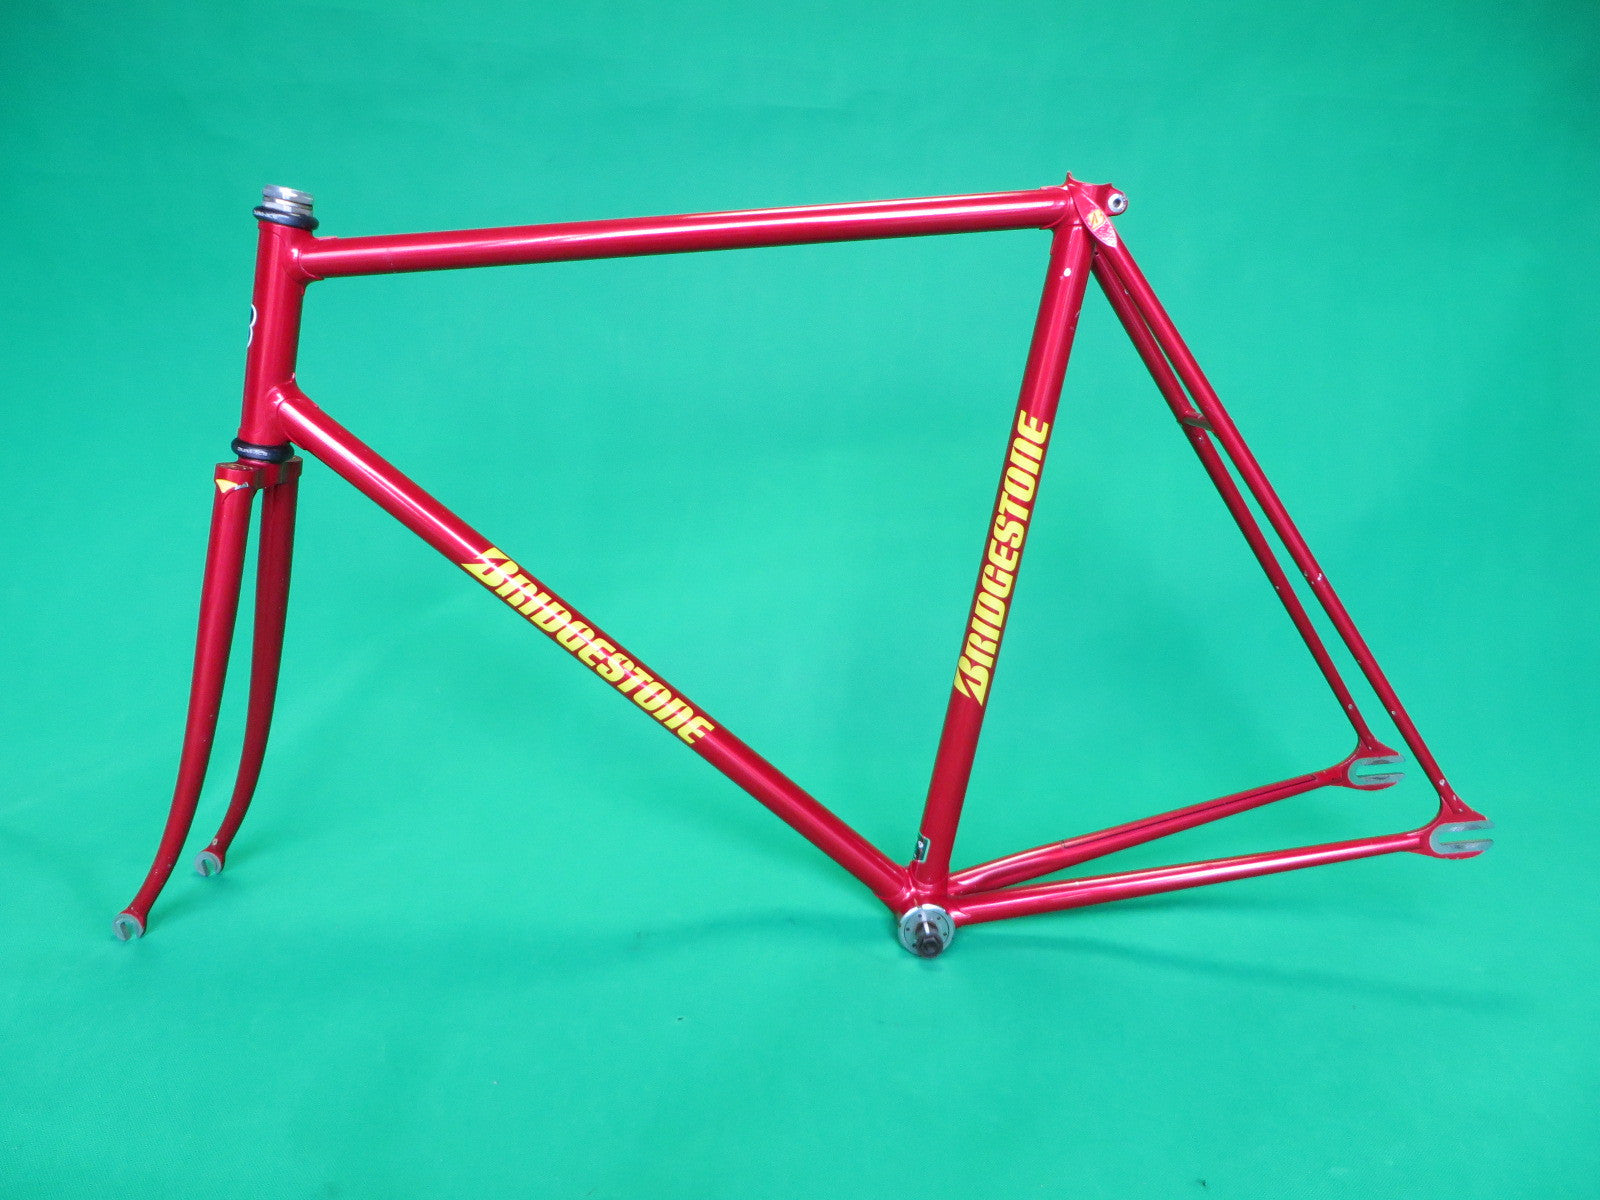 BRIDGESTONE | metallic red | 55.5cm